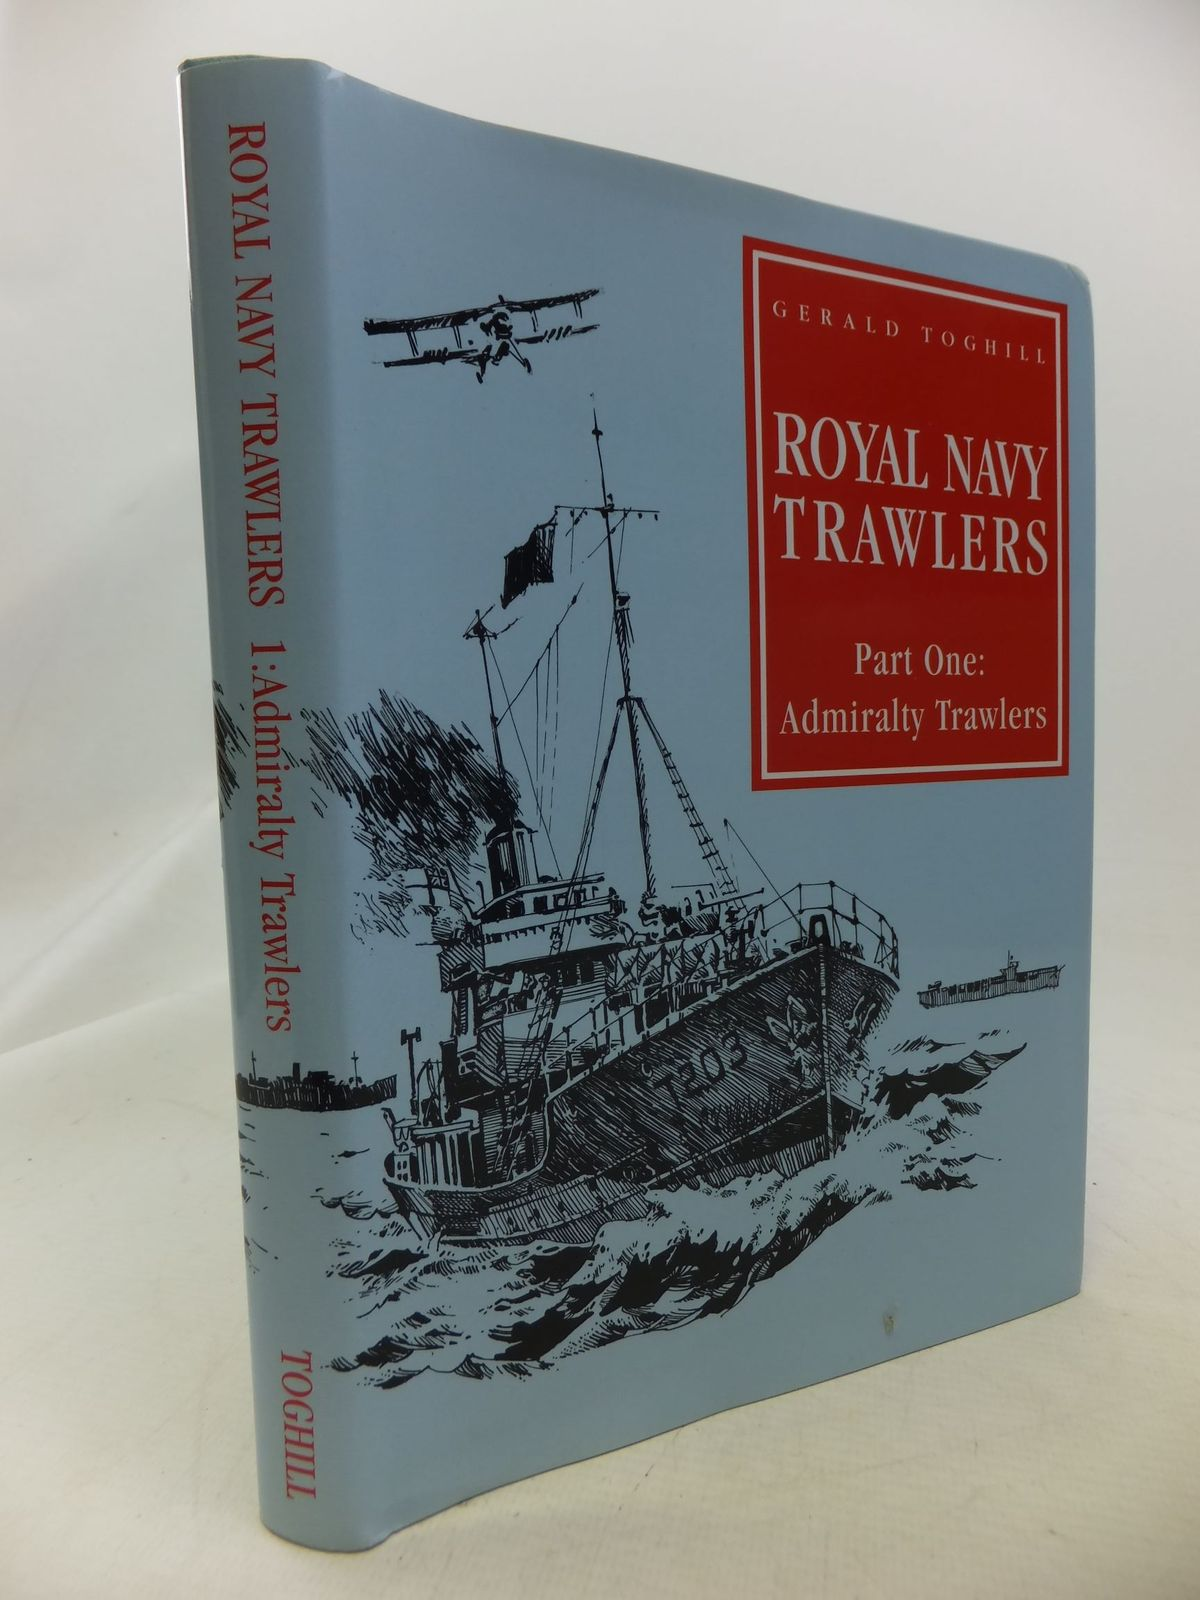 Photo of ROYAL NAVY TRAWLERS PART ONE: ADMIRALTY VESSELS written by Toghill, Gerald published by Maritime Books (STOCK CODE: 1808879)  for sale by Stella & Rose's Books